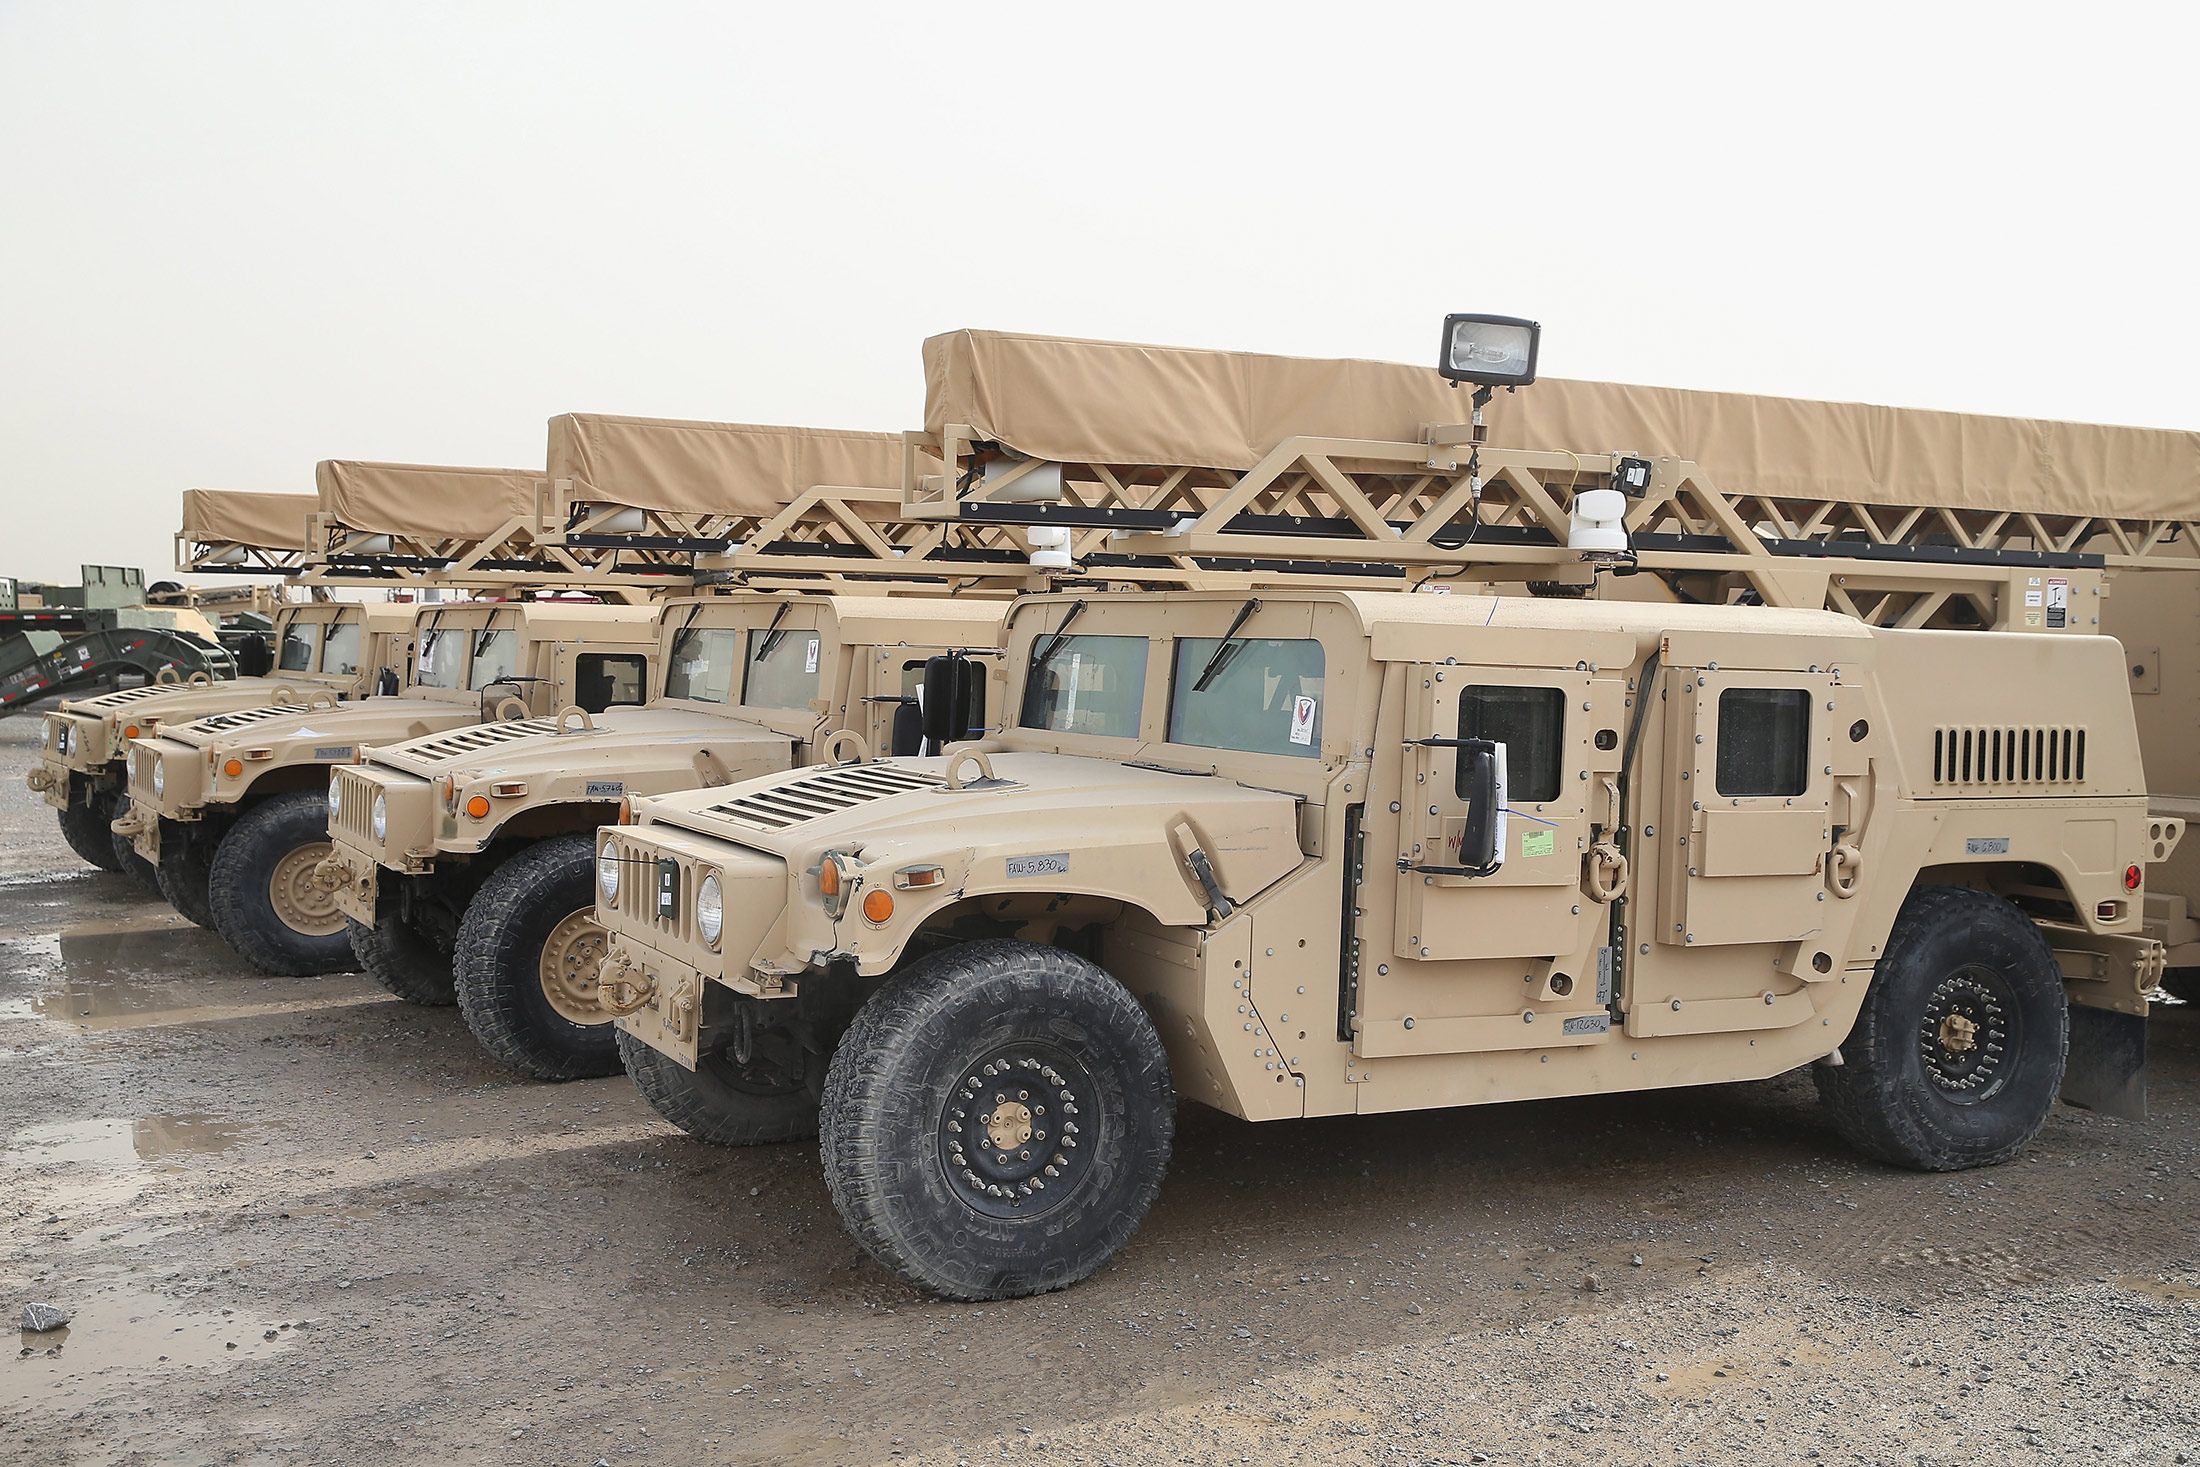 Oshkosh Wins $30 Billion U.S. Army Contract to Build Humvee ...